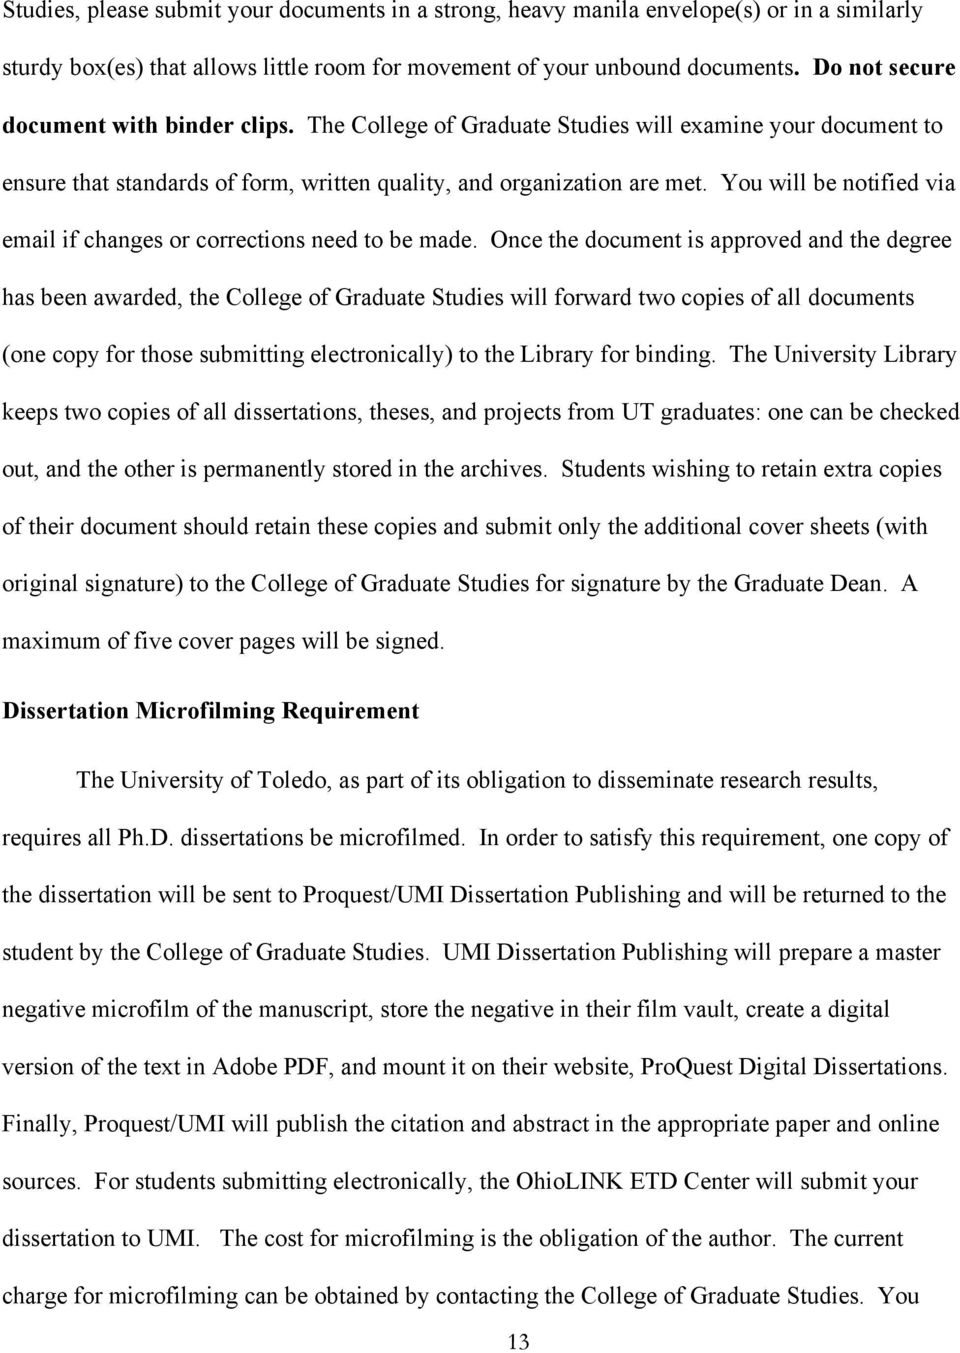 Ohiolink thesis submission